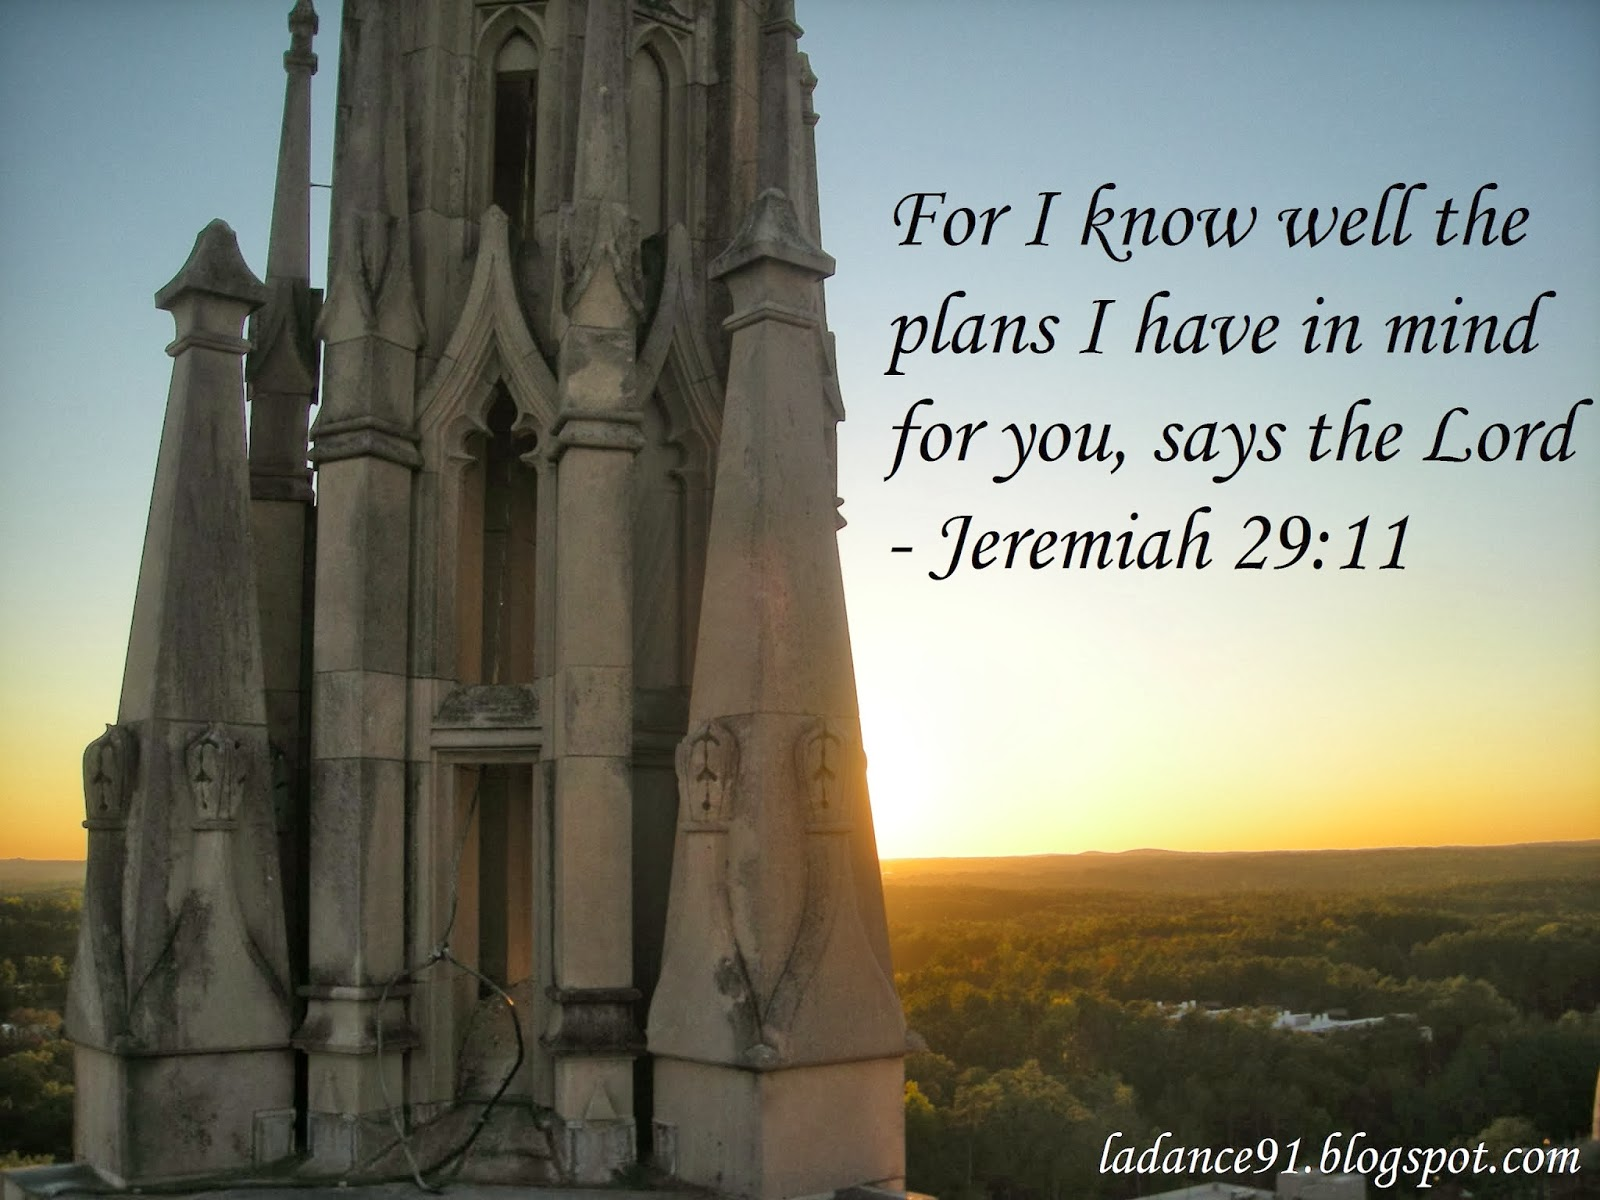 For I know well the plans I have in mind for you, says the Lord -Jeremiah 29:11